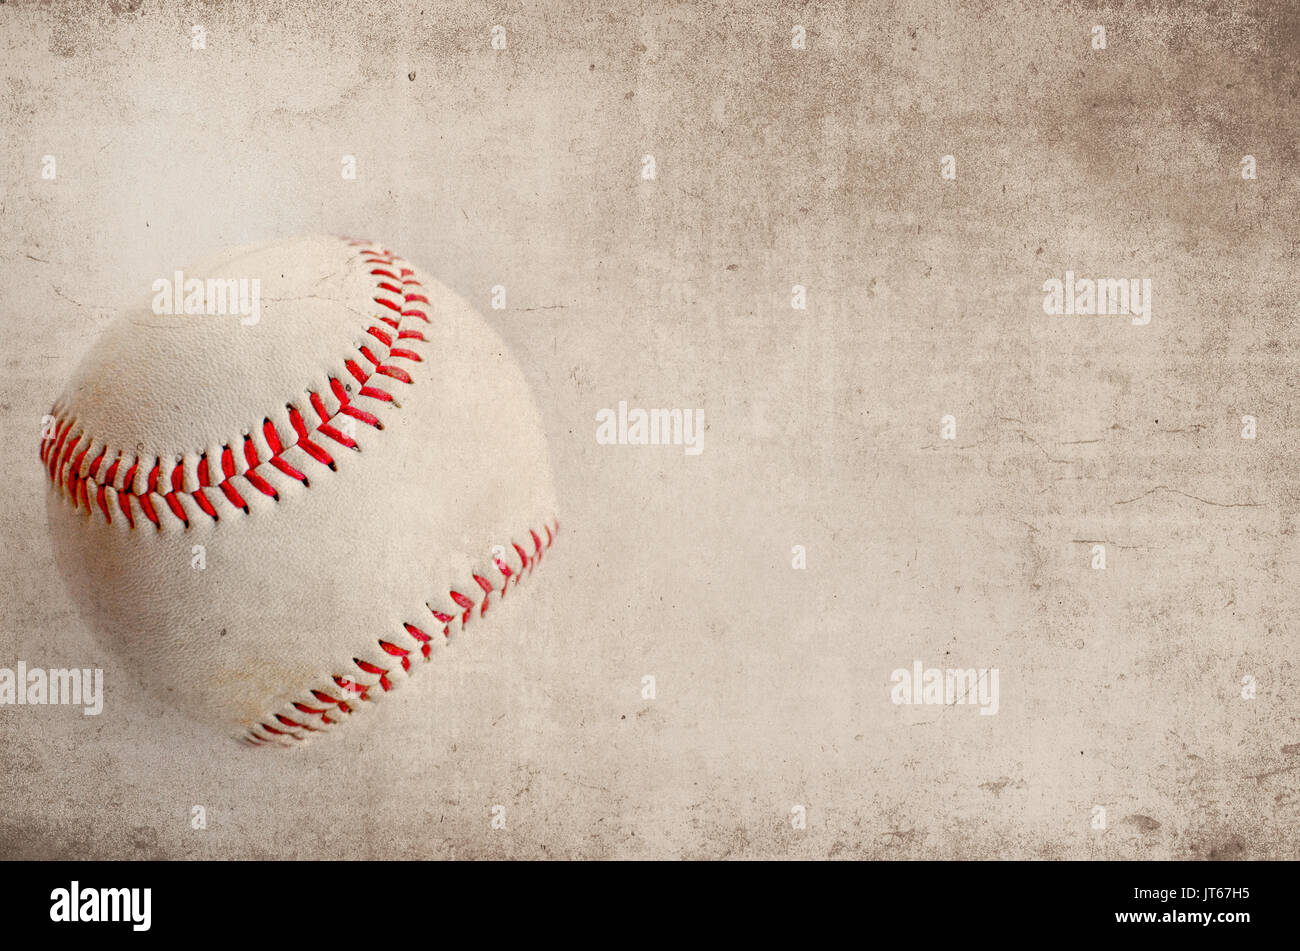 Vintage Style Baseball Image Of Ball On Grunge Background Great For Stock Photo Alamy